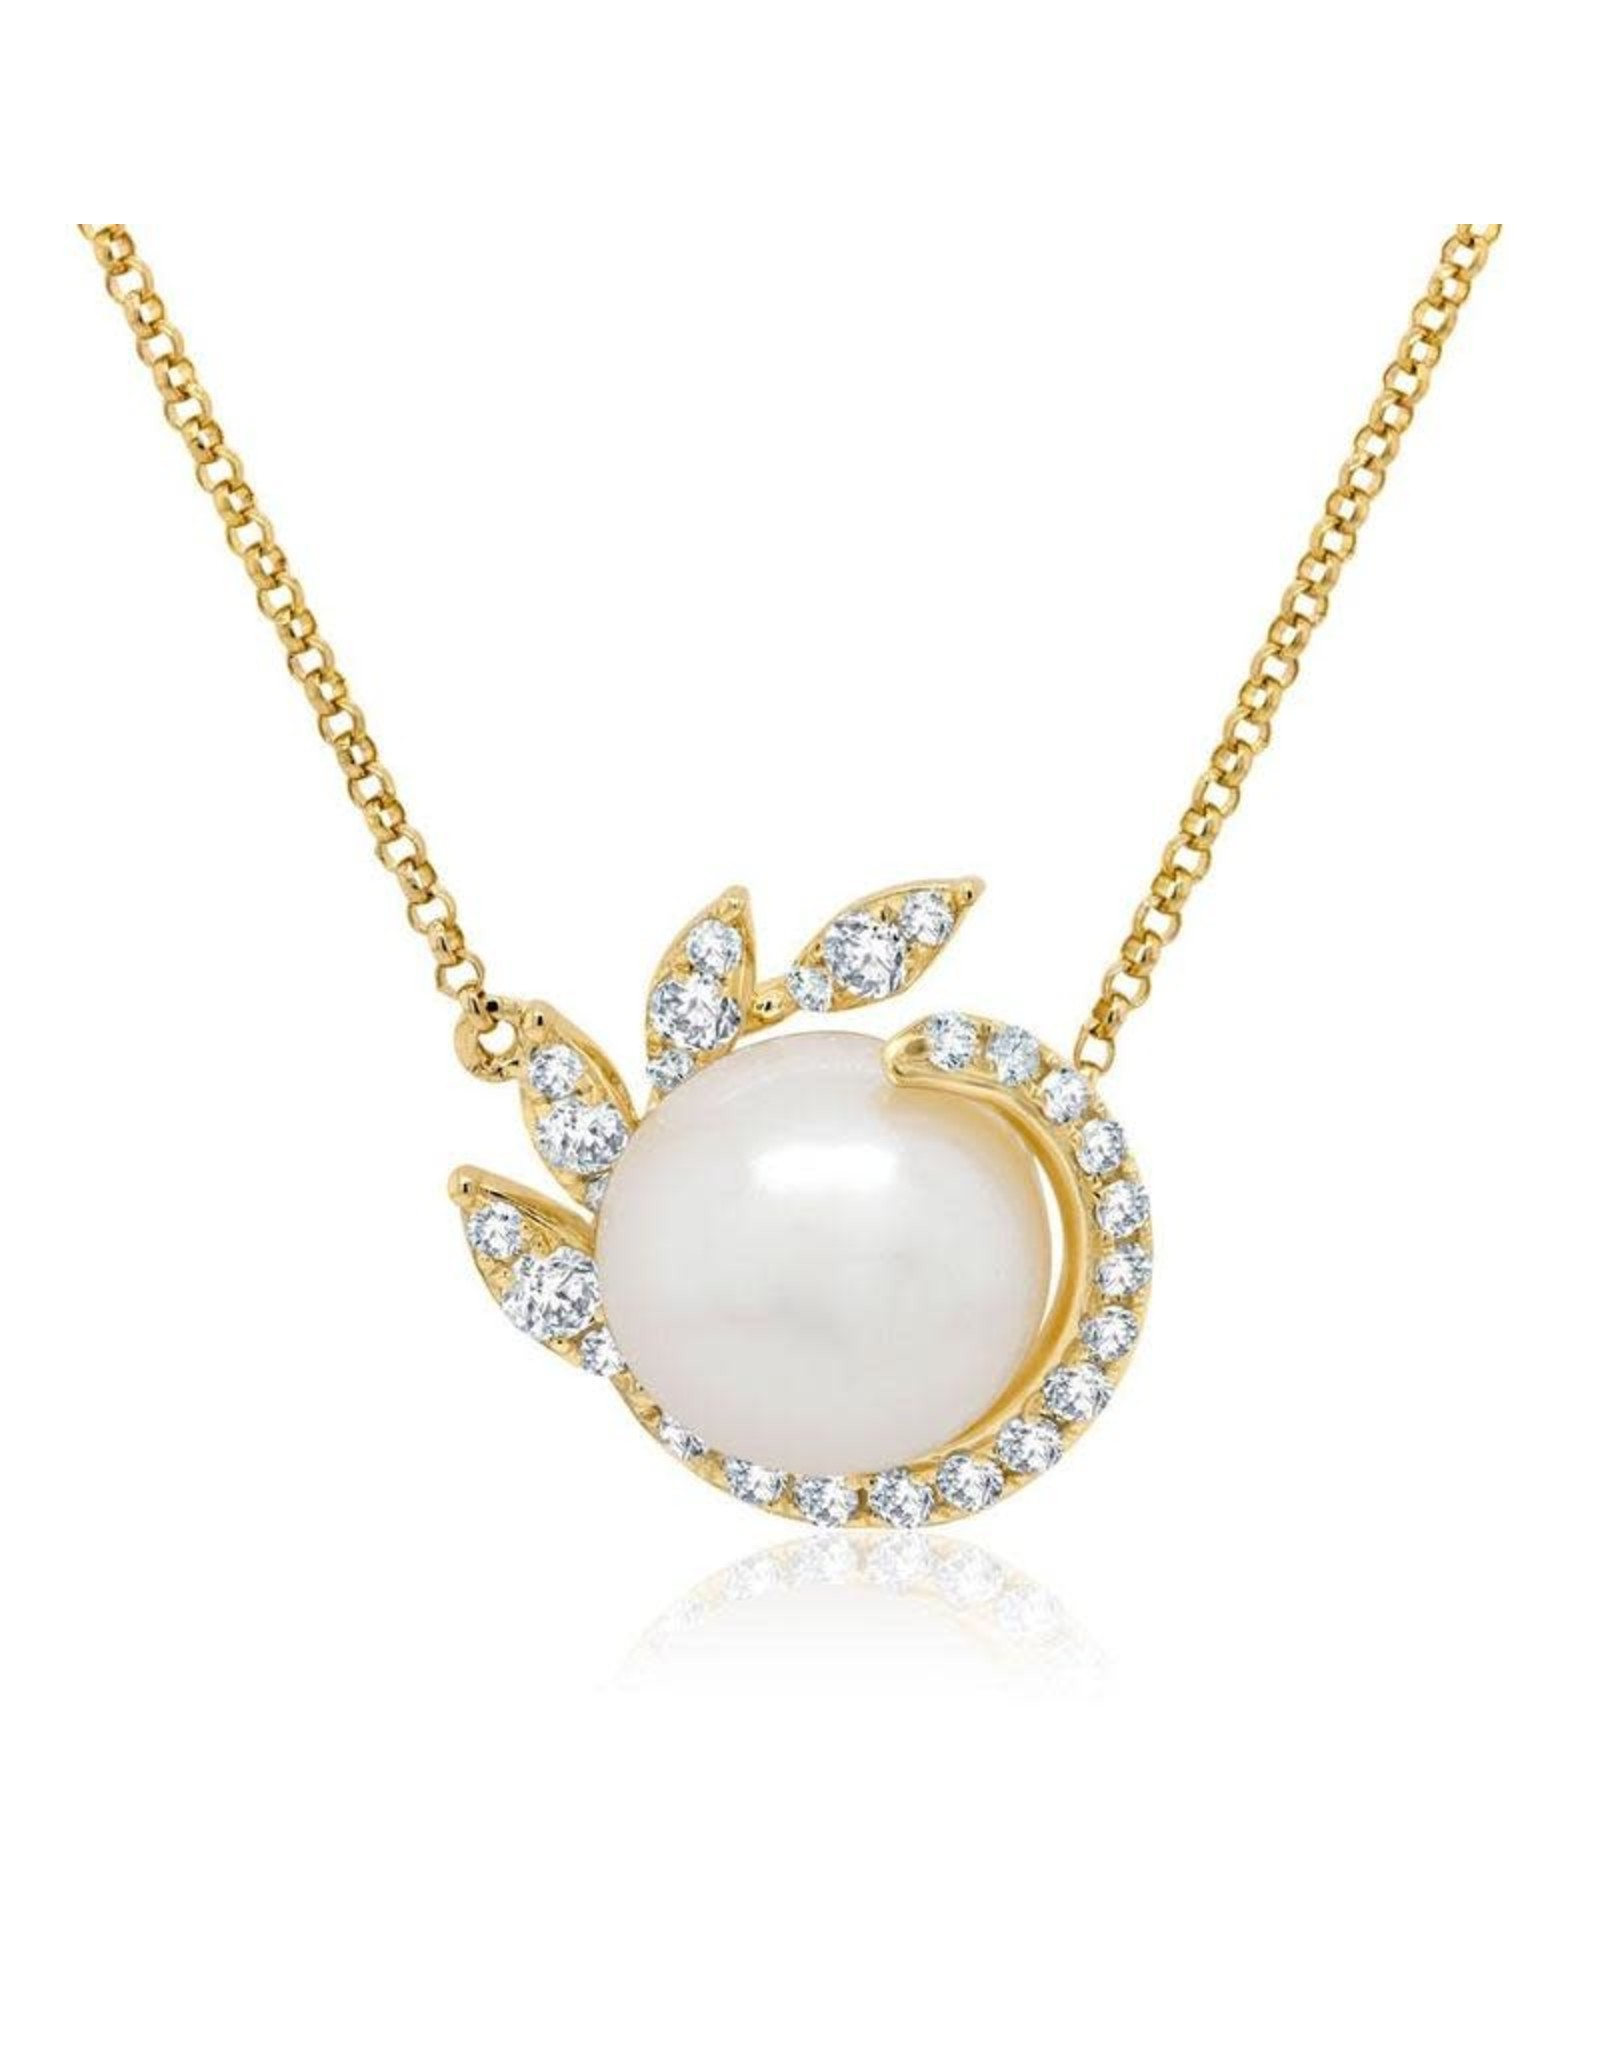 14K Yellow Gold Fresh Water Pearl and Diamond Necklace,  8.5mm, D: 0.25ct